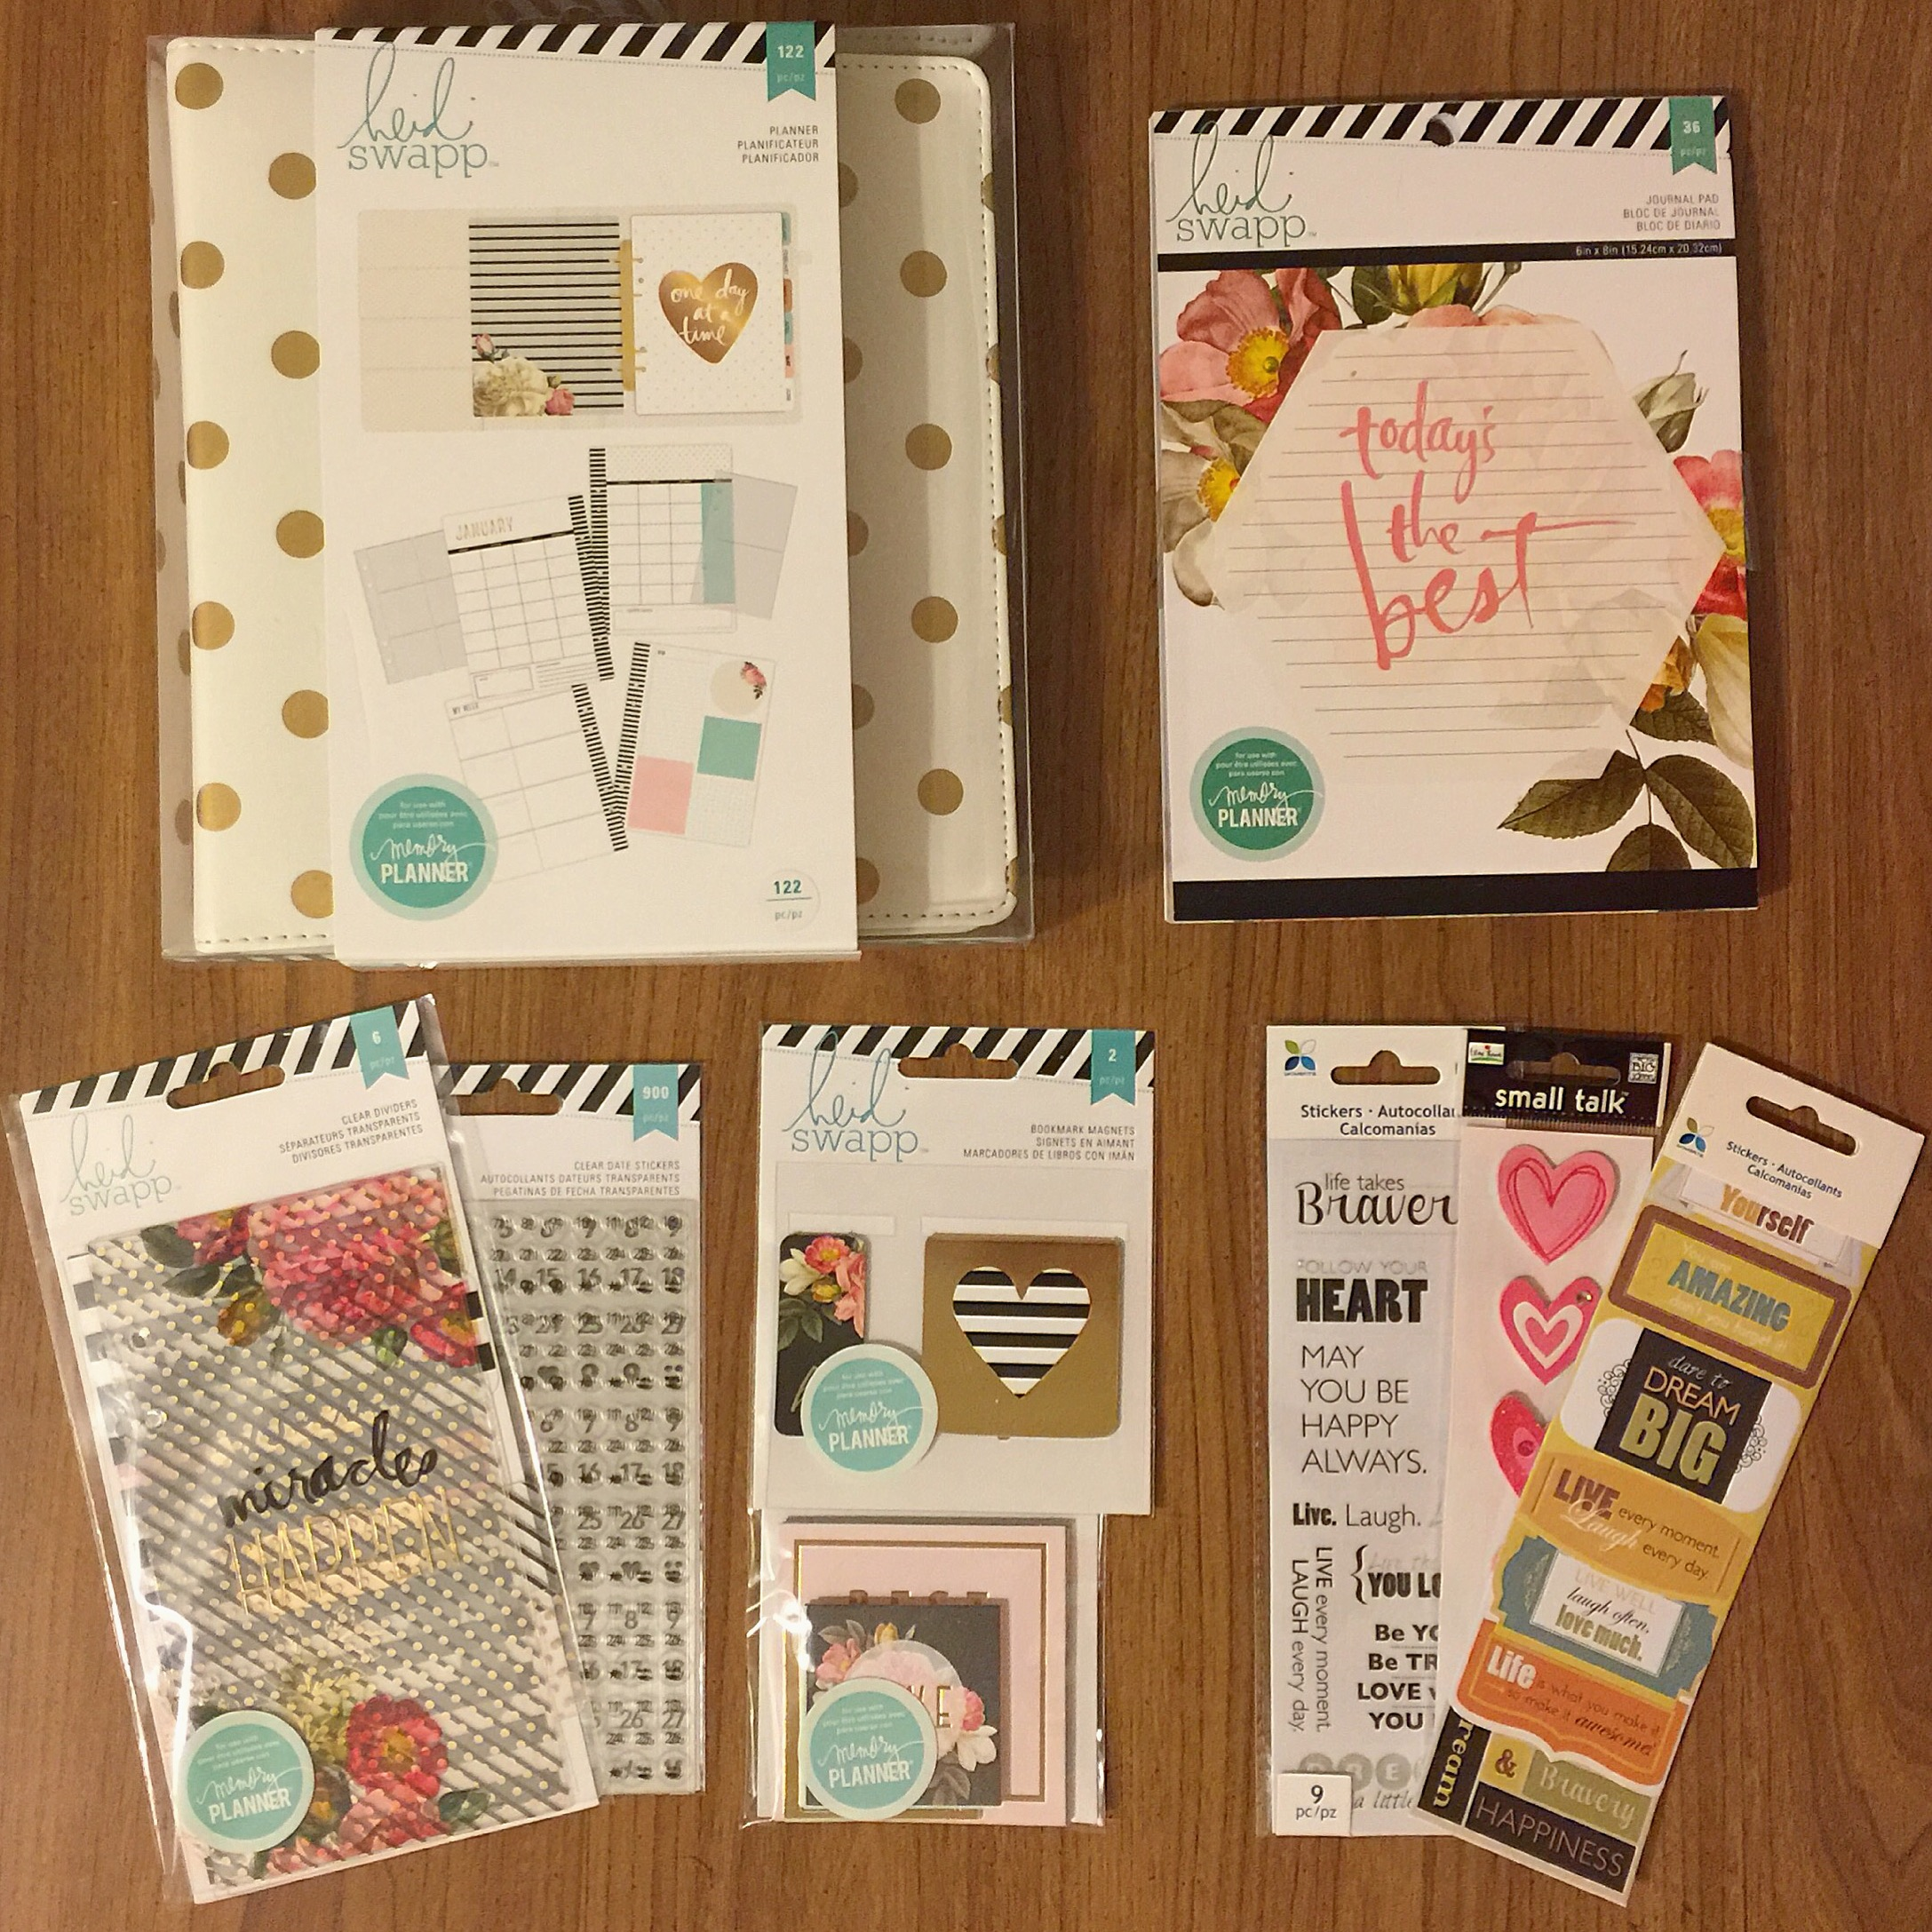 "(From left to right) I purchased the Heidi Swapp planner, the ""Today's the Best"" notebook, stickers from Michael's, Heidi Swapp bookmark magnets and quote cards, and Heidi Swapp number stickers and planner dividers."